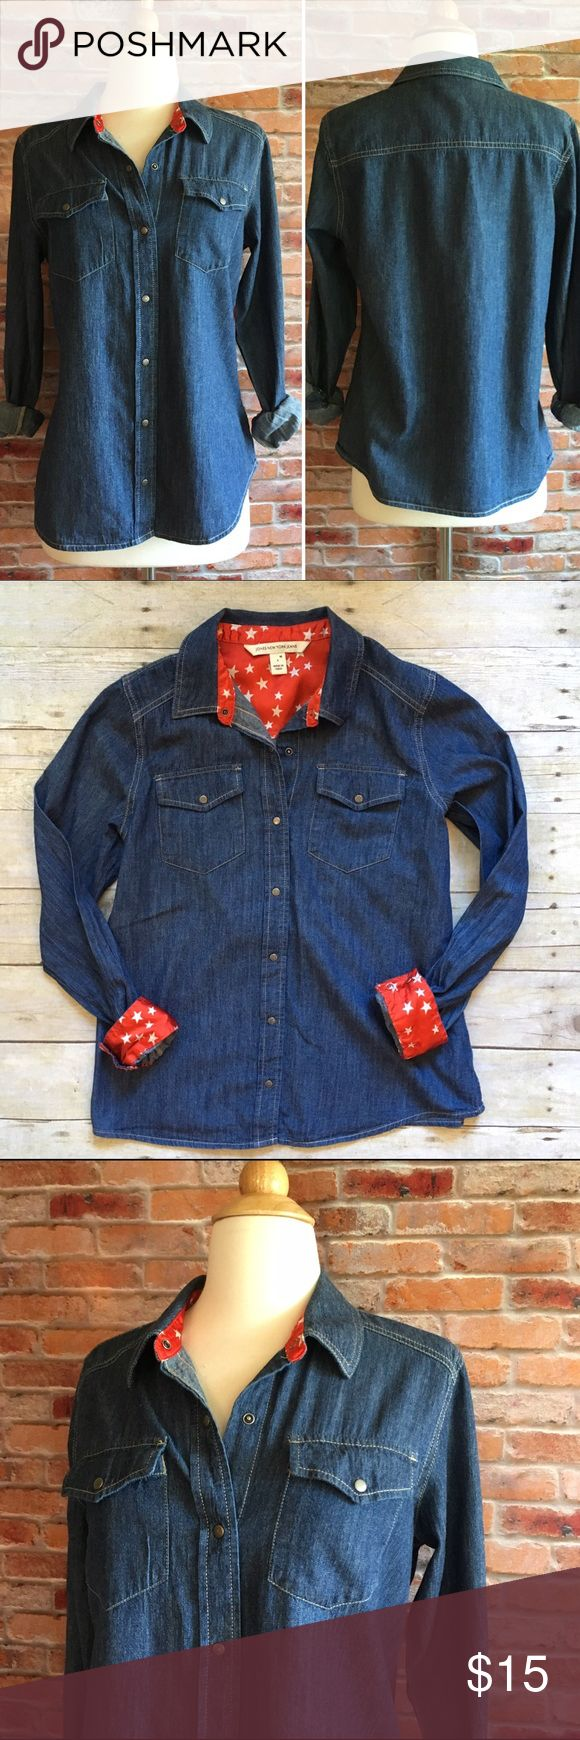 Jones Wear denim button down with star lining Light weight. Snap front denim button down top from Jones Wear. Two bust pockets. Red and white star lined collar and cuffs. In excellent condition. Size Medium. jones wear Tops Button Down Shirts